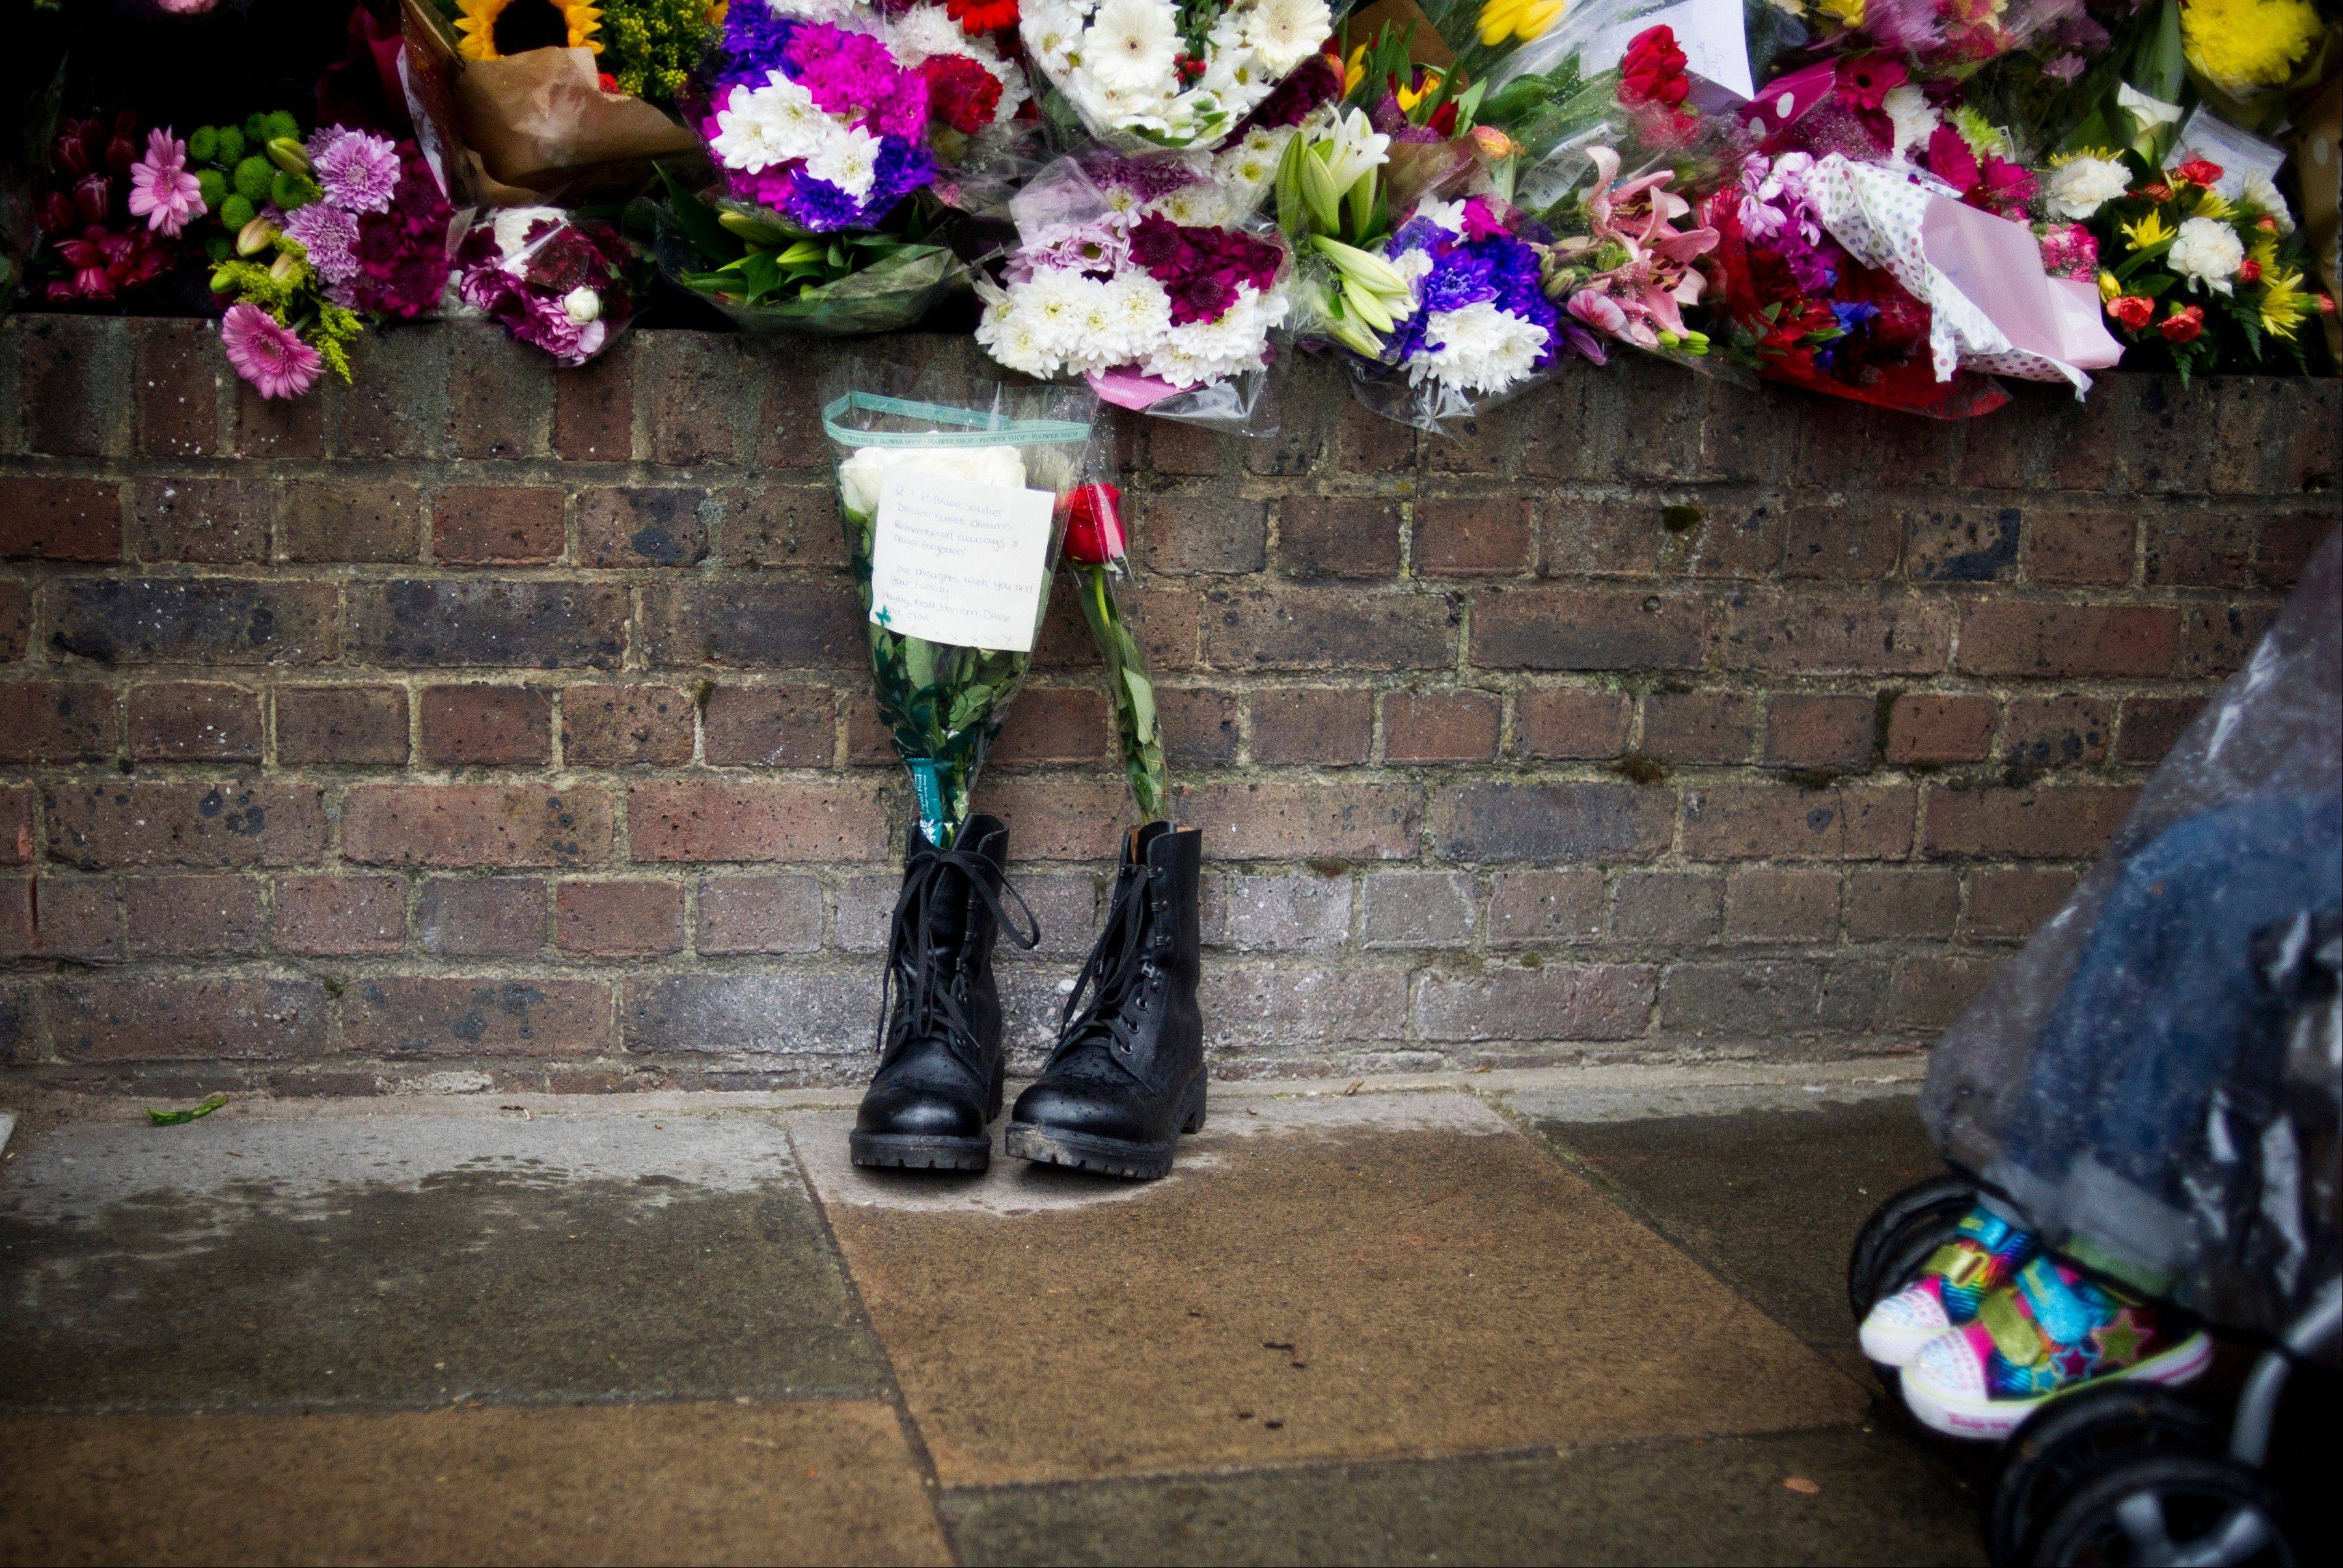 In this Friday, May 24, 2013 file photo, military boots are laid in tribute outside the Woolwich Barracks, in London, in response to the bloody attack on Wednesday when a British soldier was killed in the nearby street. Counterterrorism police on Saturday were questioning a friend of Michael Adebolajo, one of two suspects in the savage killing of British soldier Lee Rigby. The friend, Abu Nusaybah, was arrested immediately after he gave a television interview telling his story about how Adebolajo may have become radicalized.